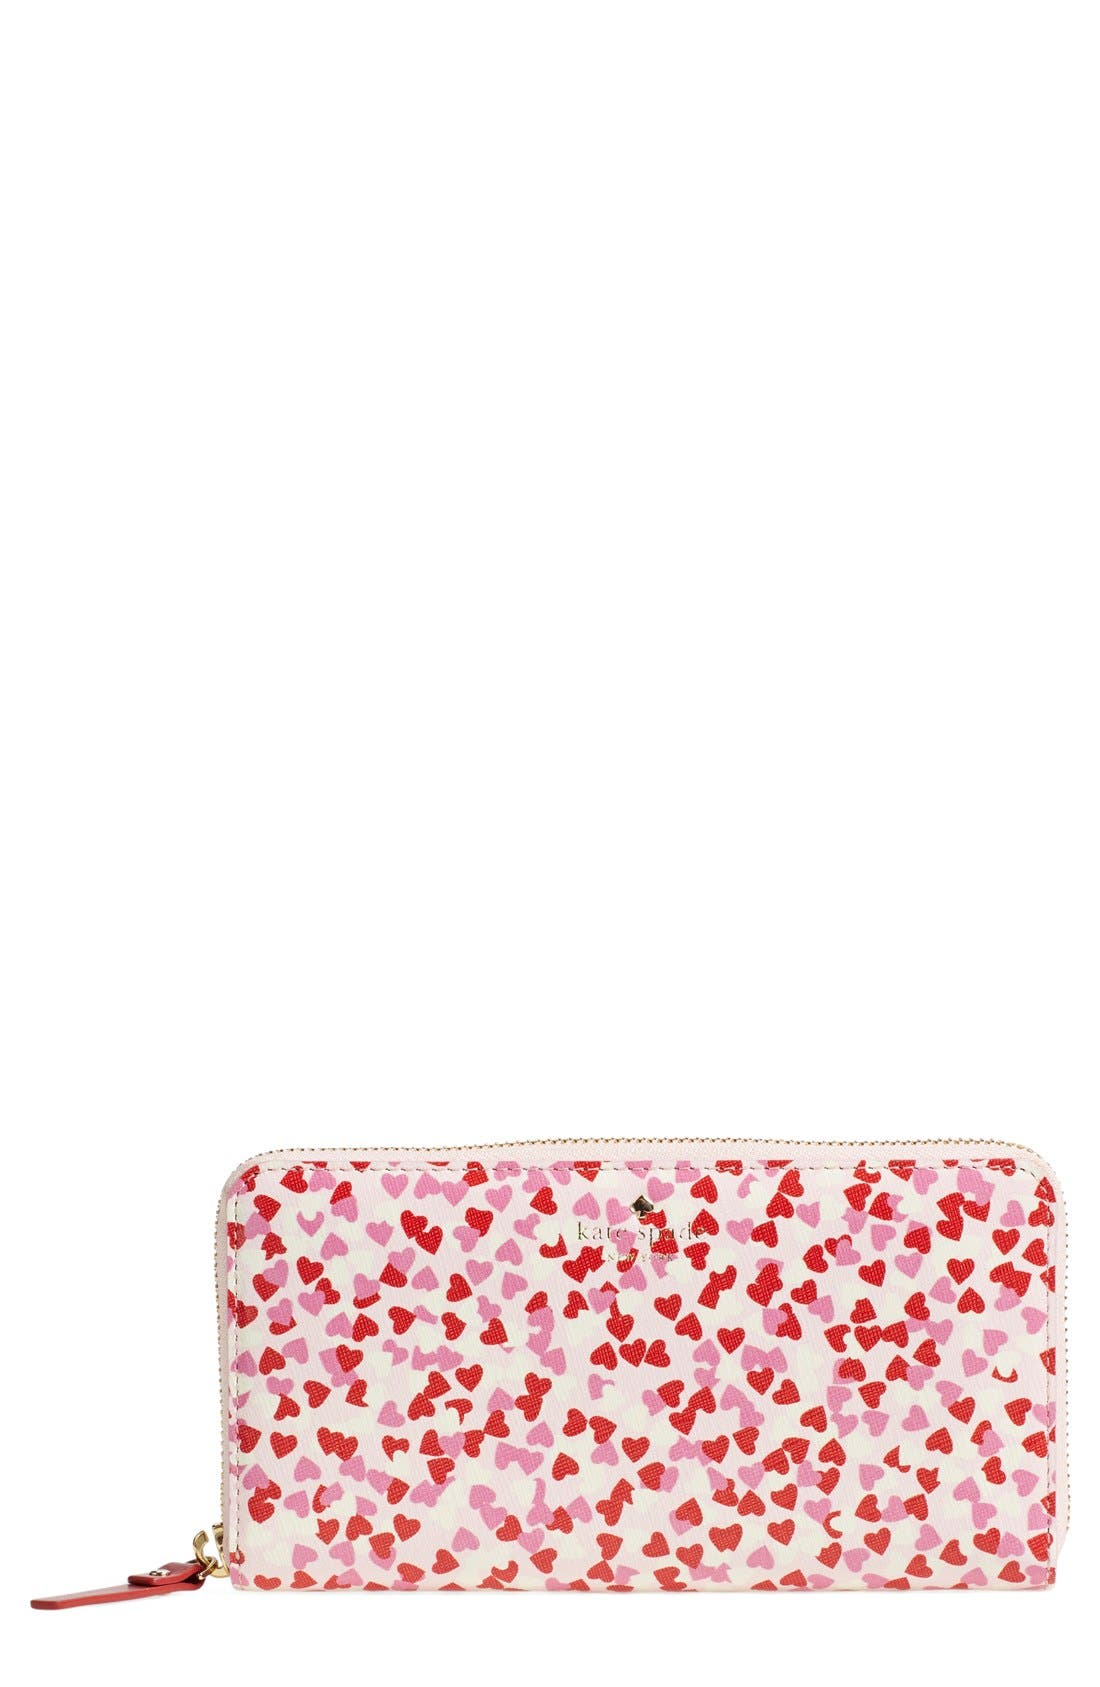 Alternate Image 1 Selected - kate spade new york 'confetti print lacey' zip around wallet